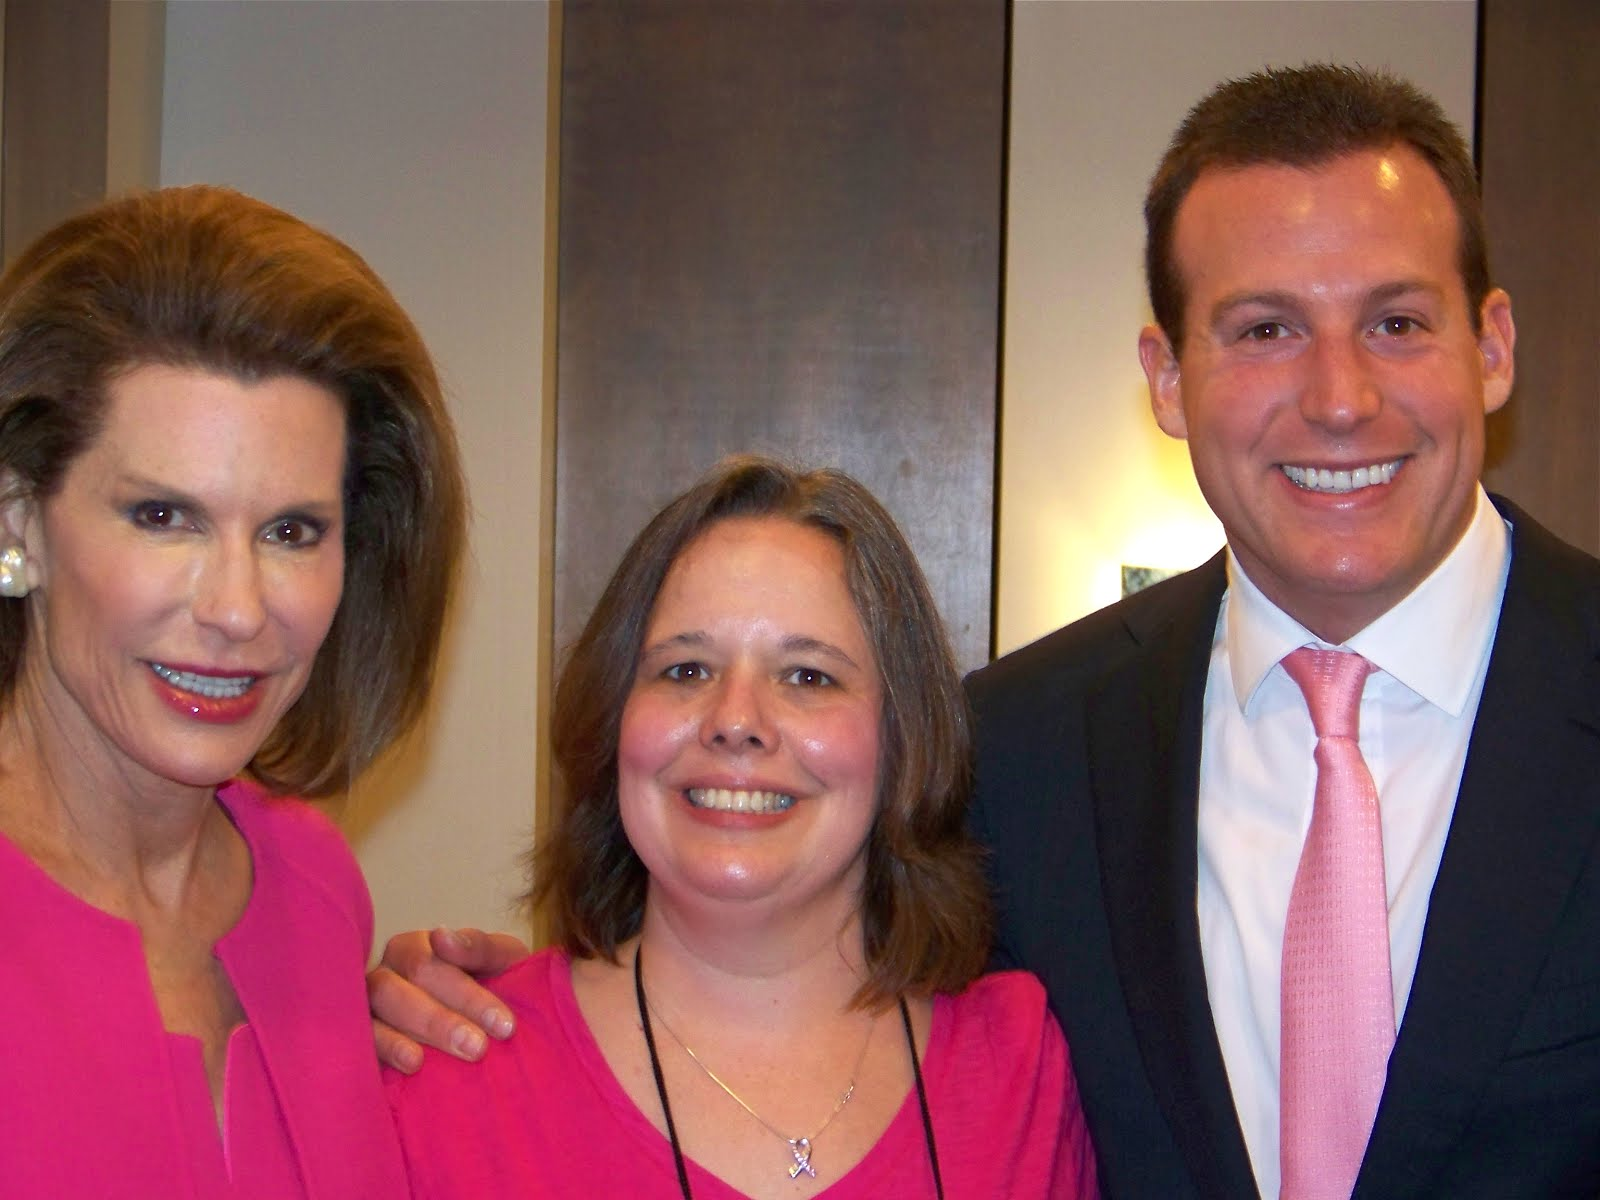 Nancy Brinker, Founder of Susan G. Komen, me and her son Eric Brinker